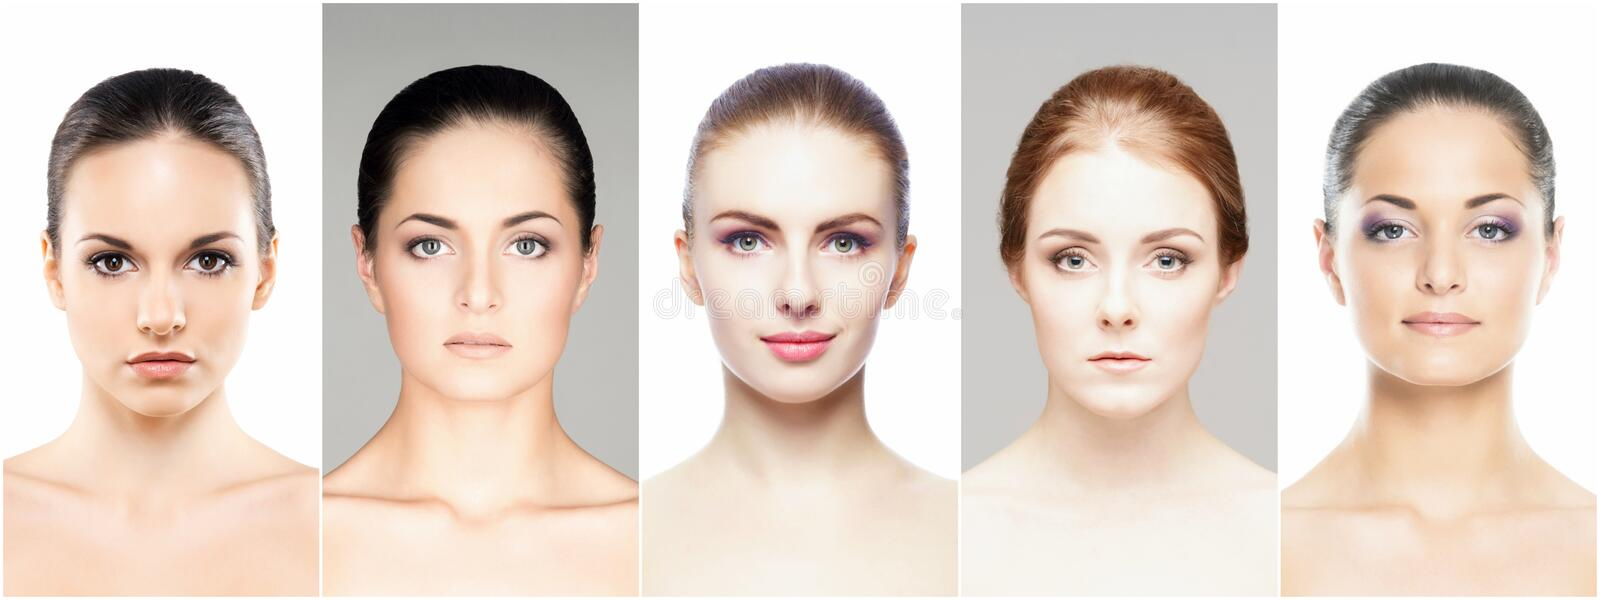 Collage of various spa female portraits royalty free stock photo